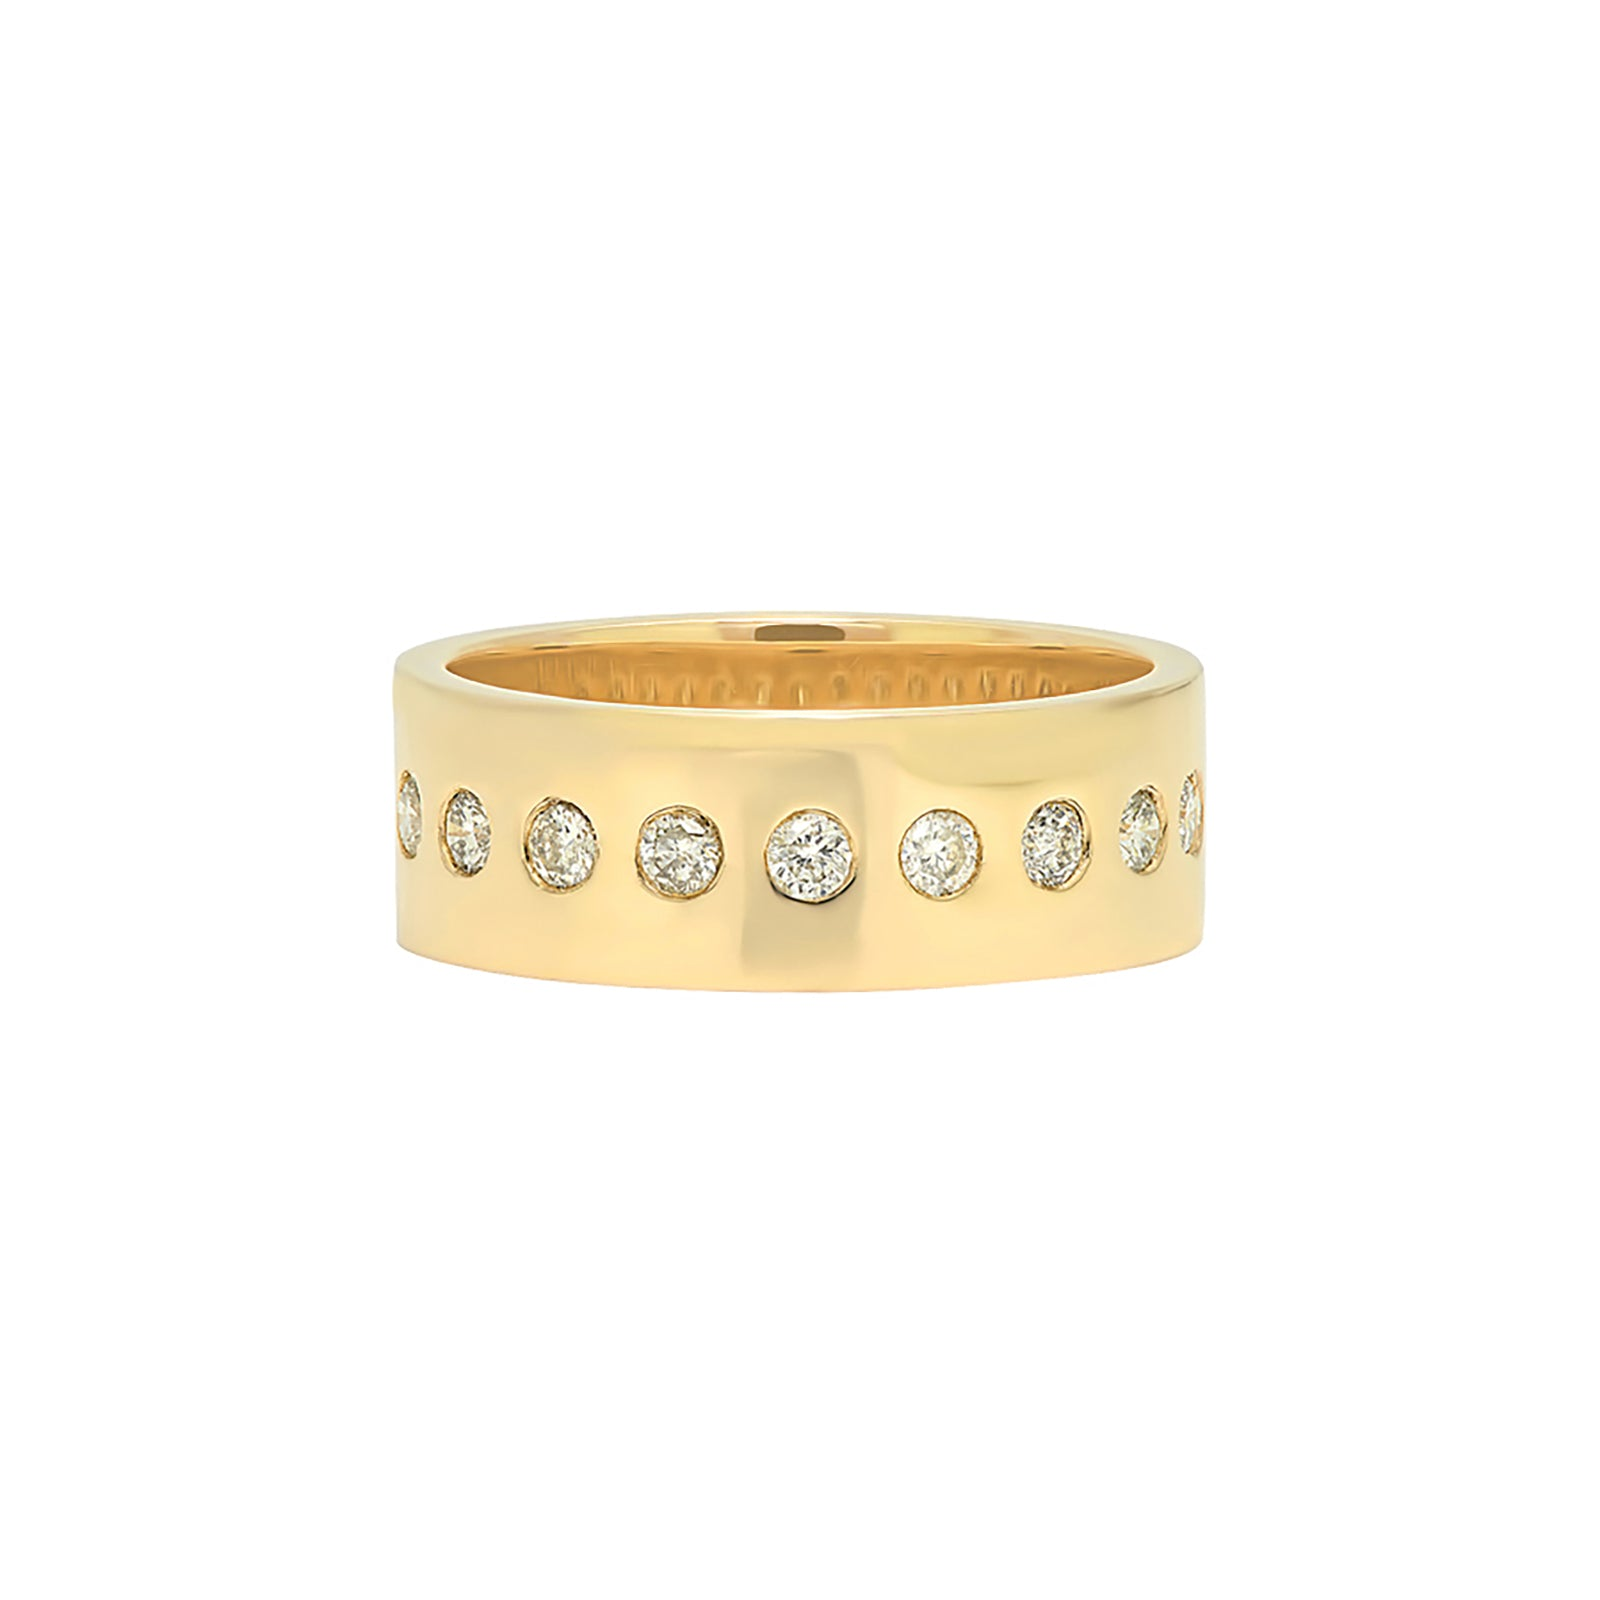 Nancy Newberg Cigar Band with Center Row Diamonds - Small - Rings - Broken English Jewelry